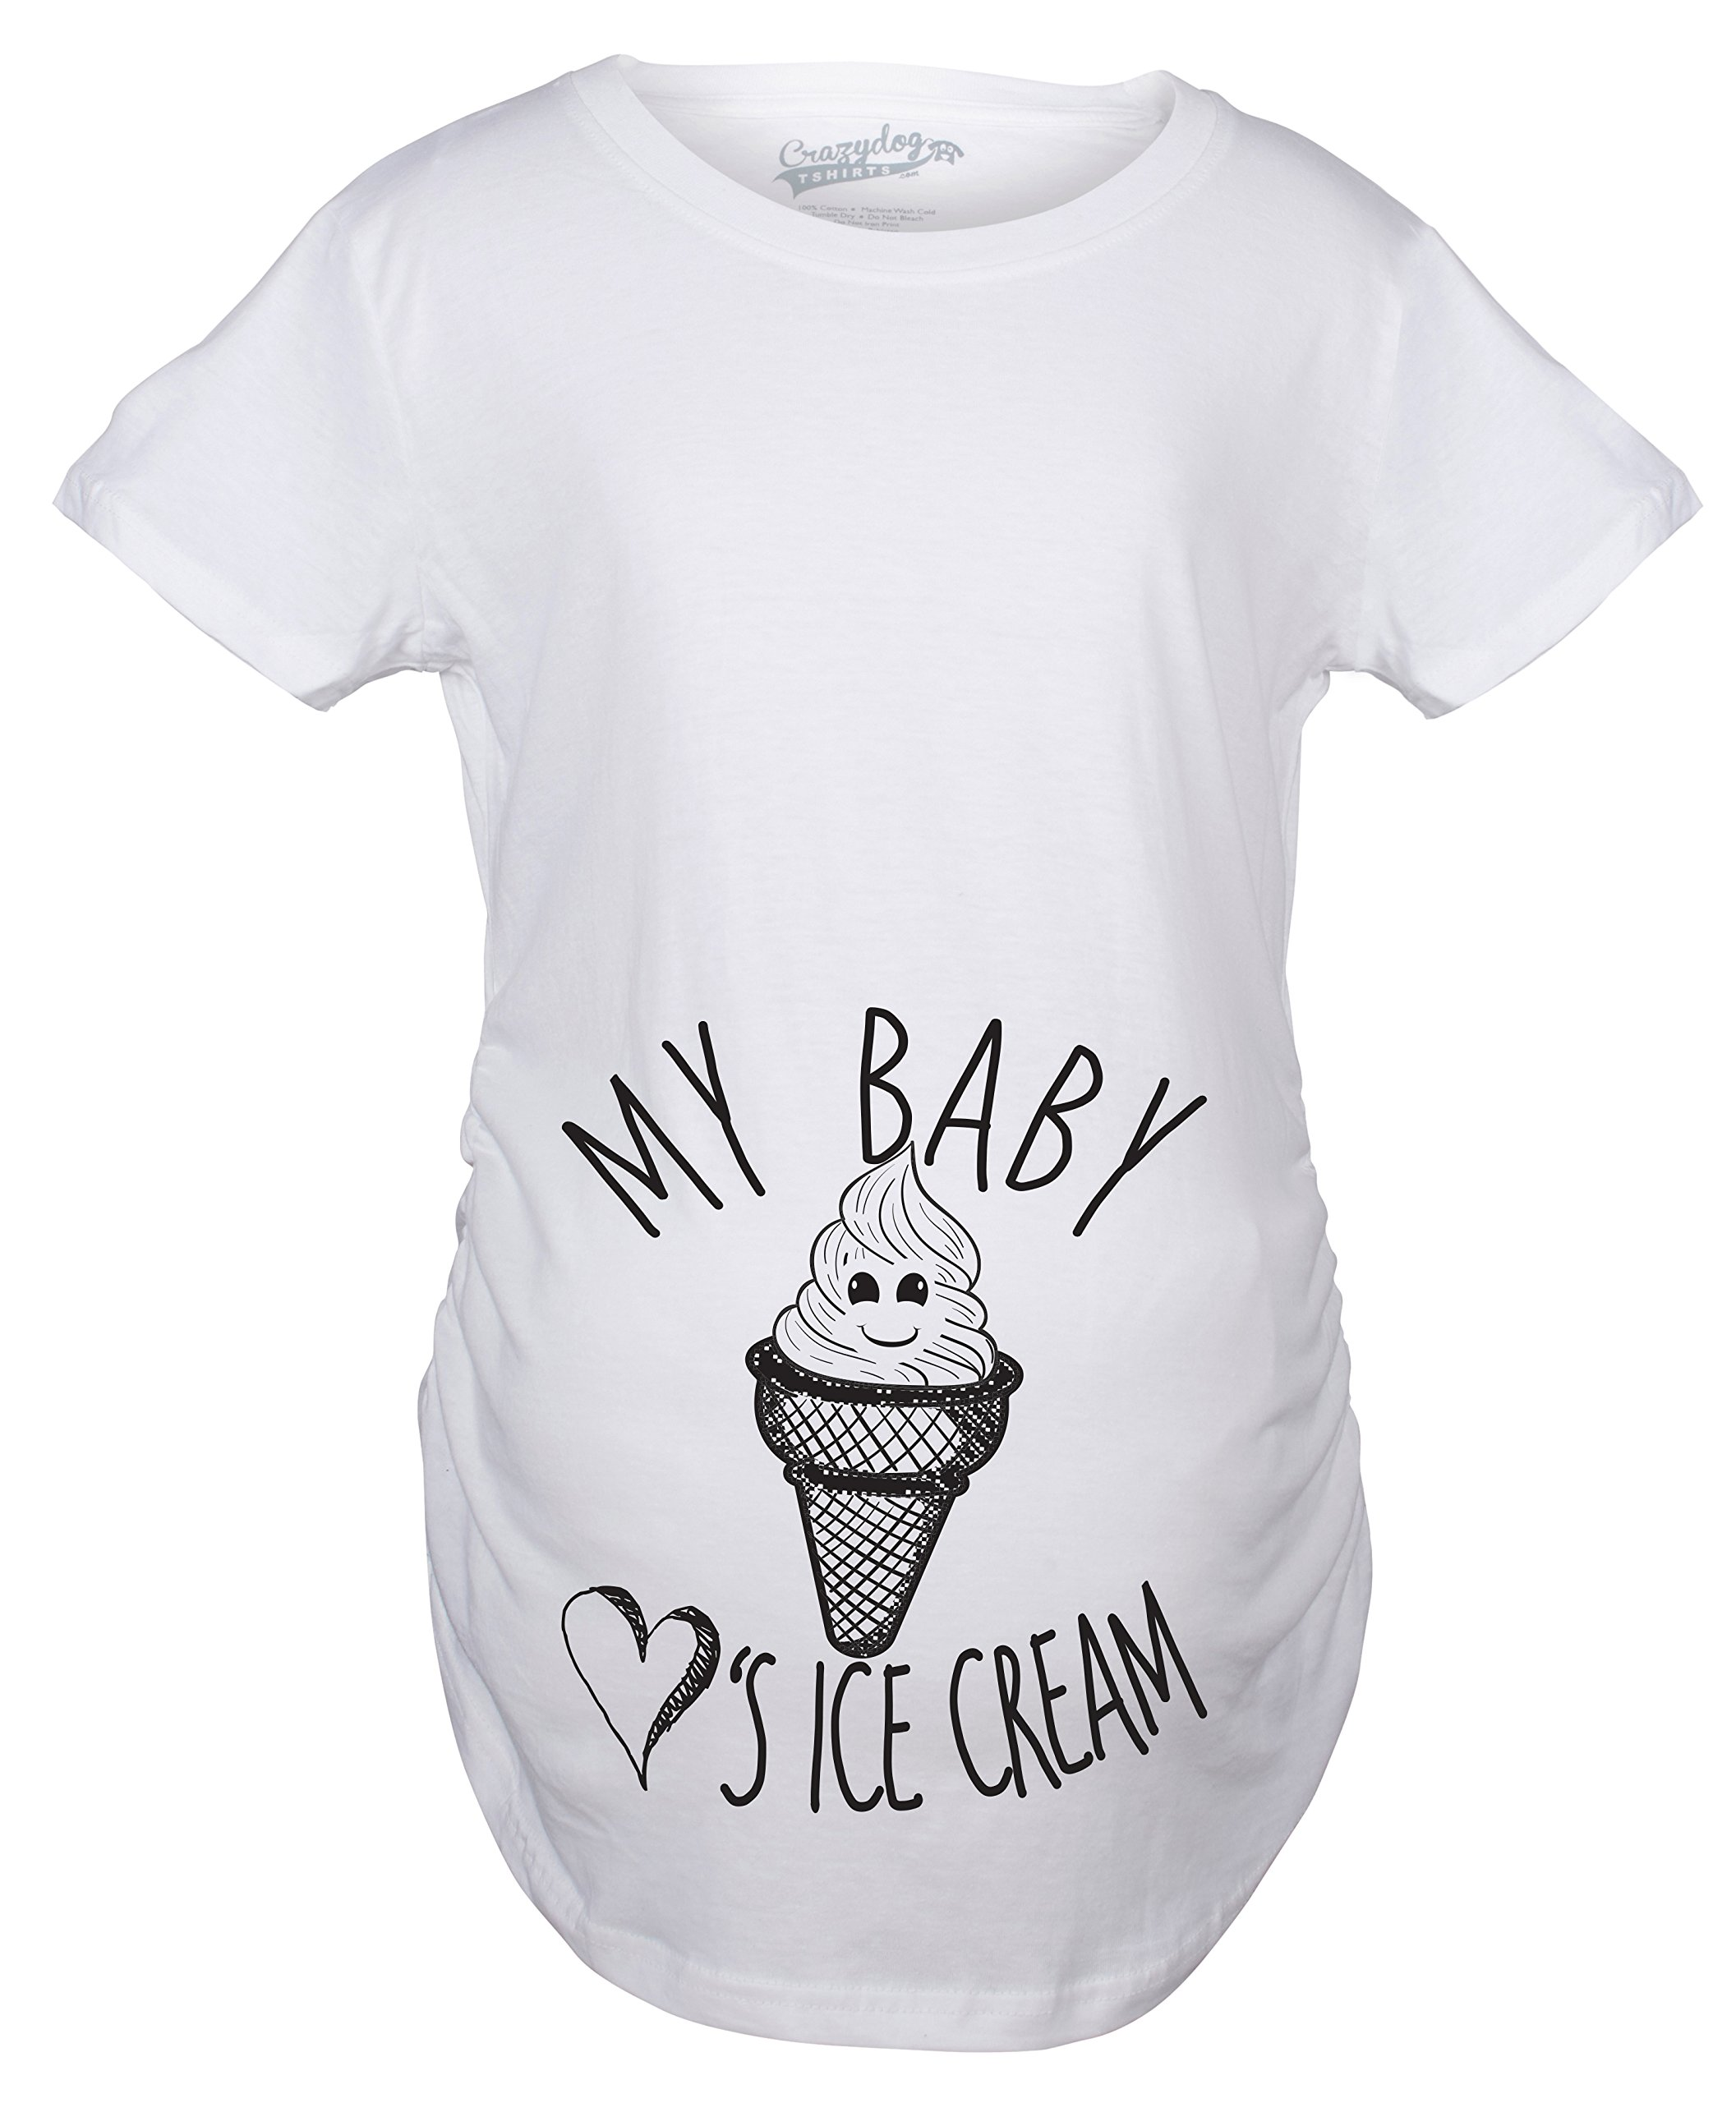 Maternity My Baby Loves Ice Cream Funny Announce Pregnancy Baby Bump T Shirt (White) -S